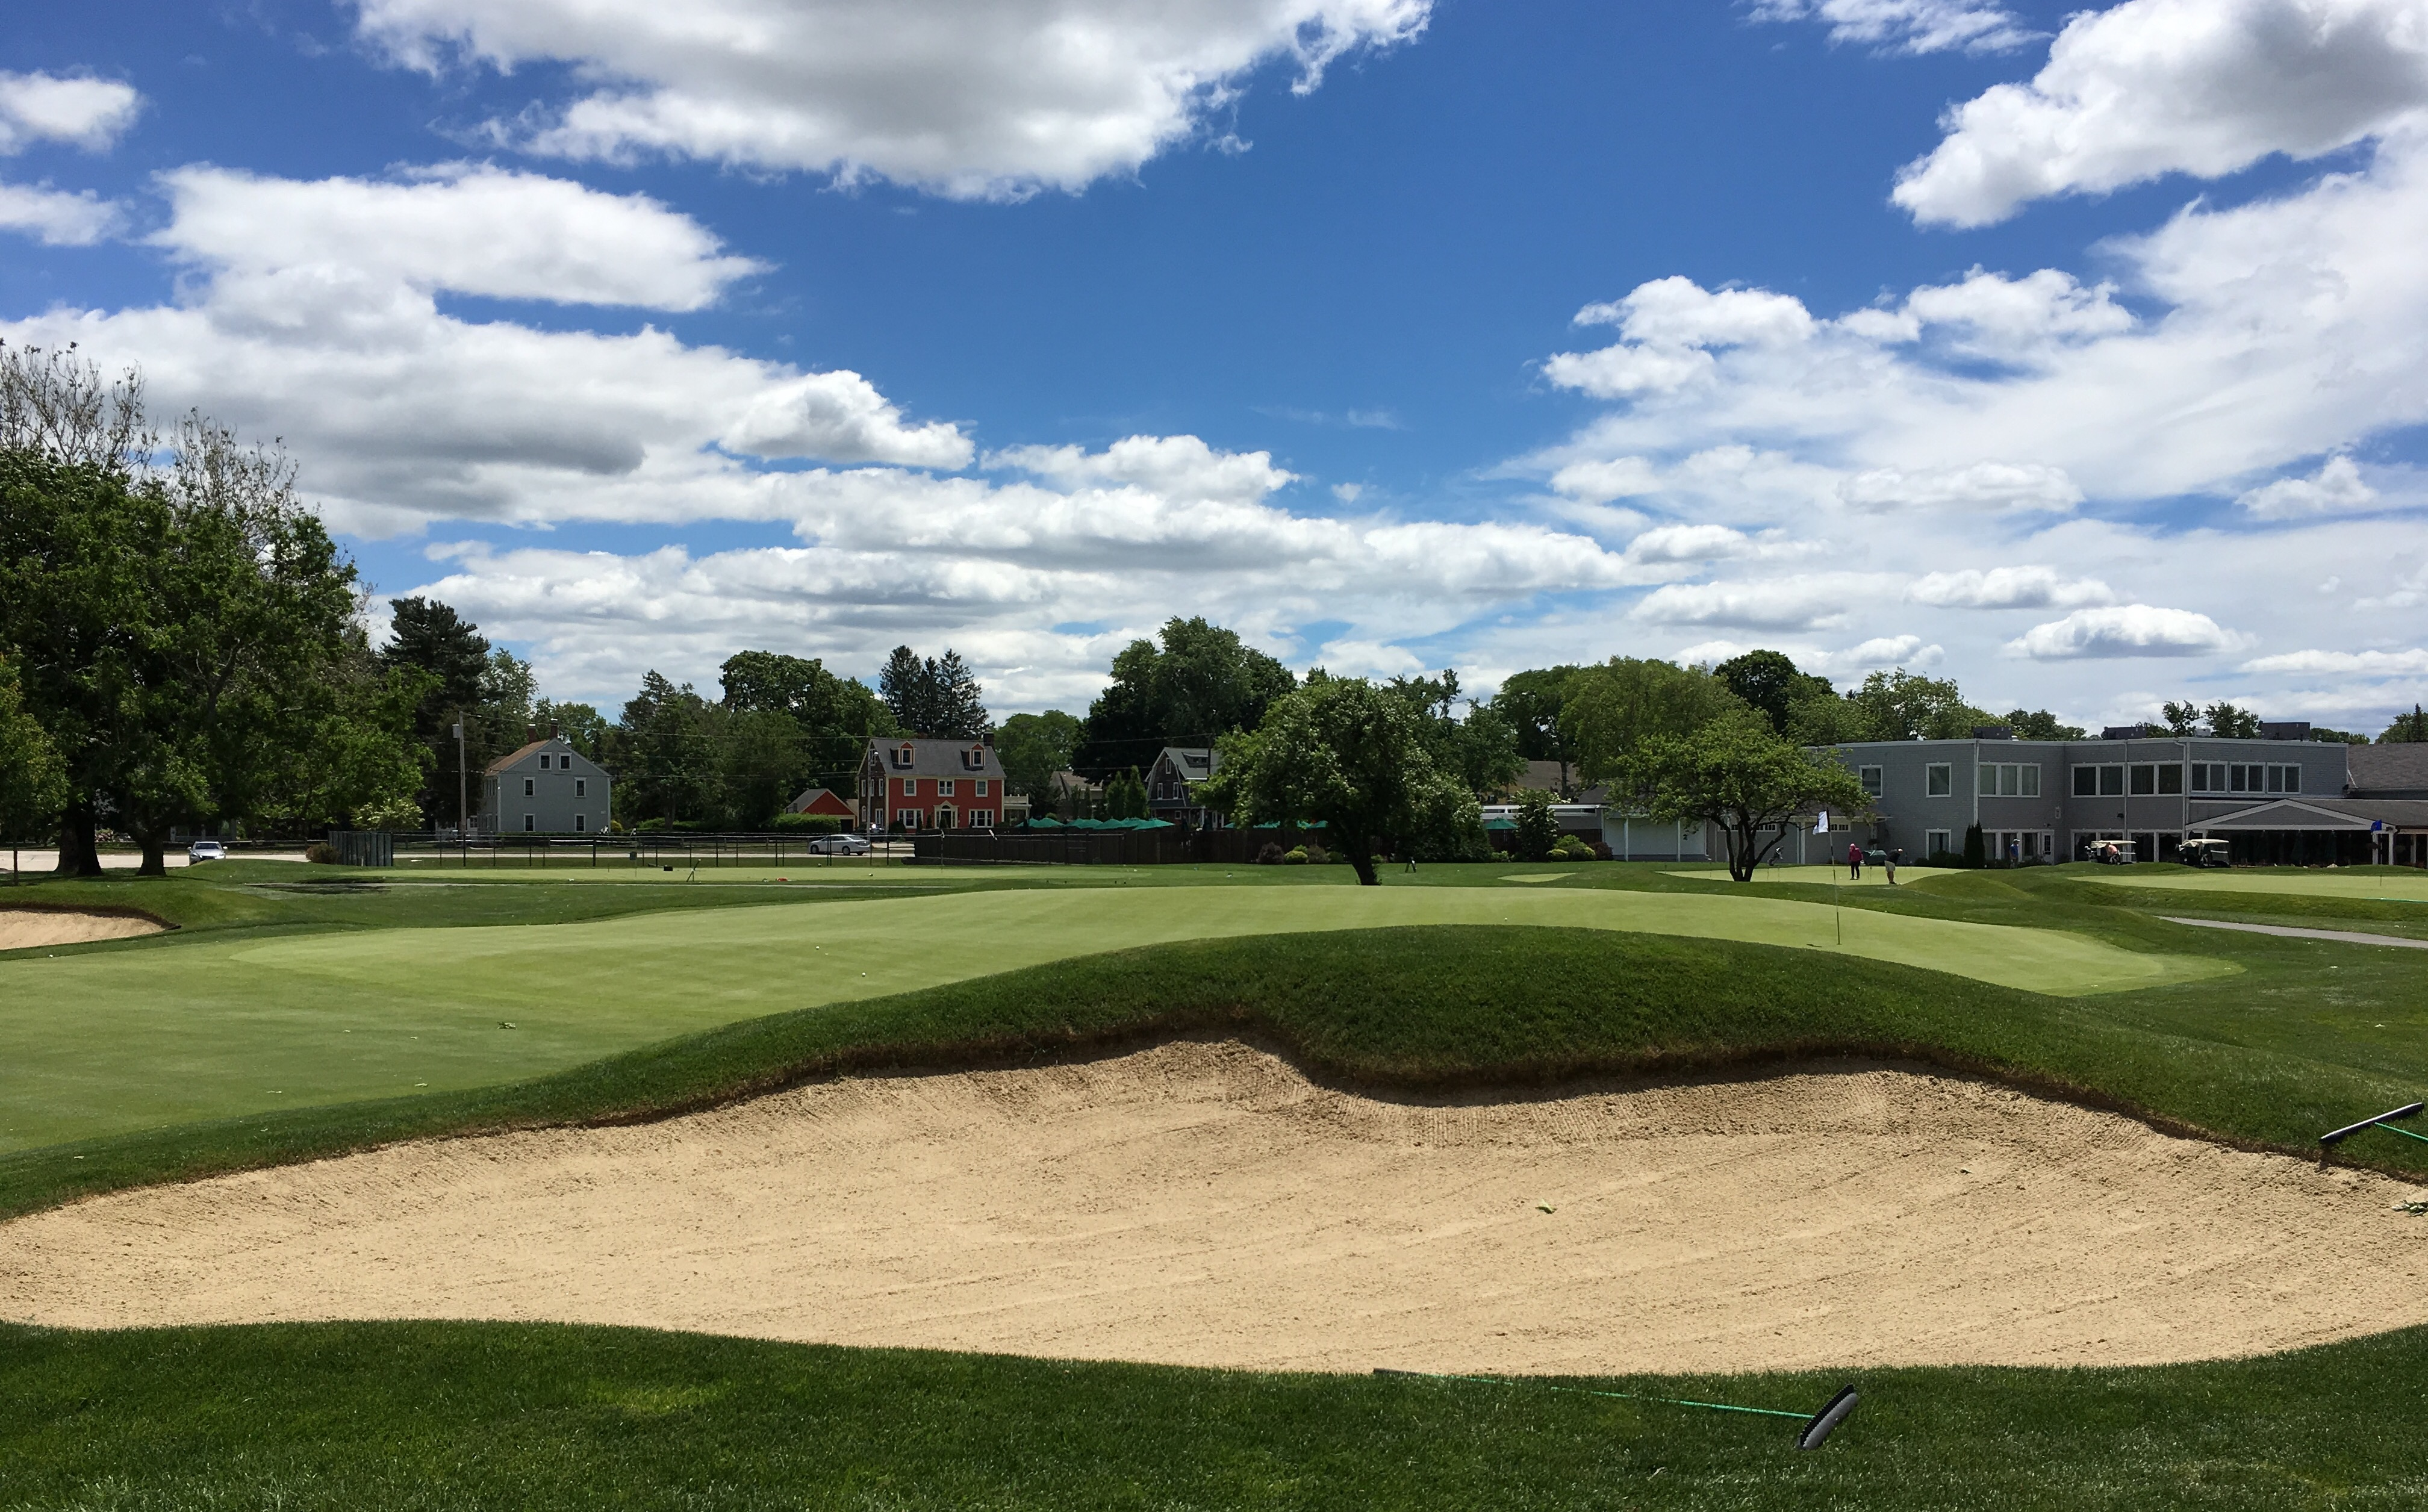 #18 - One last Ross mound bunker short right of the green